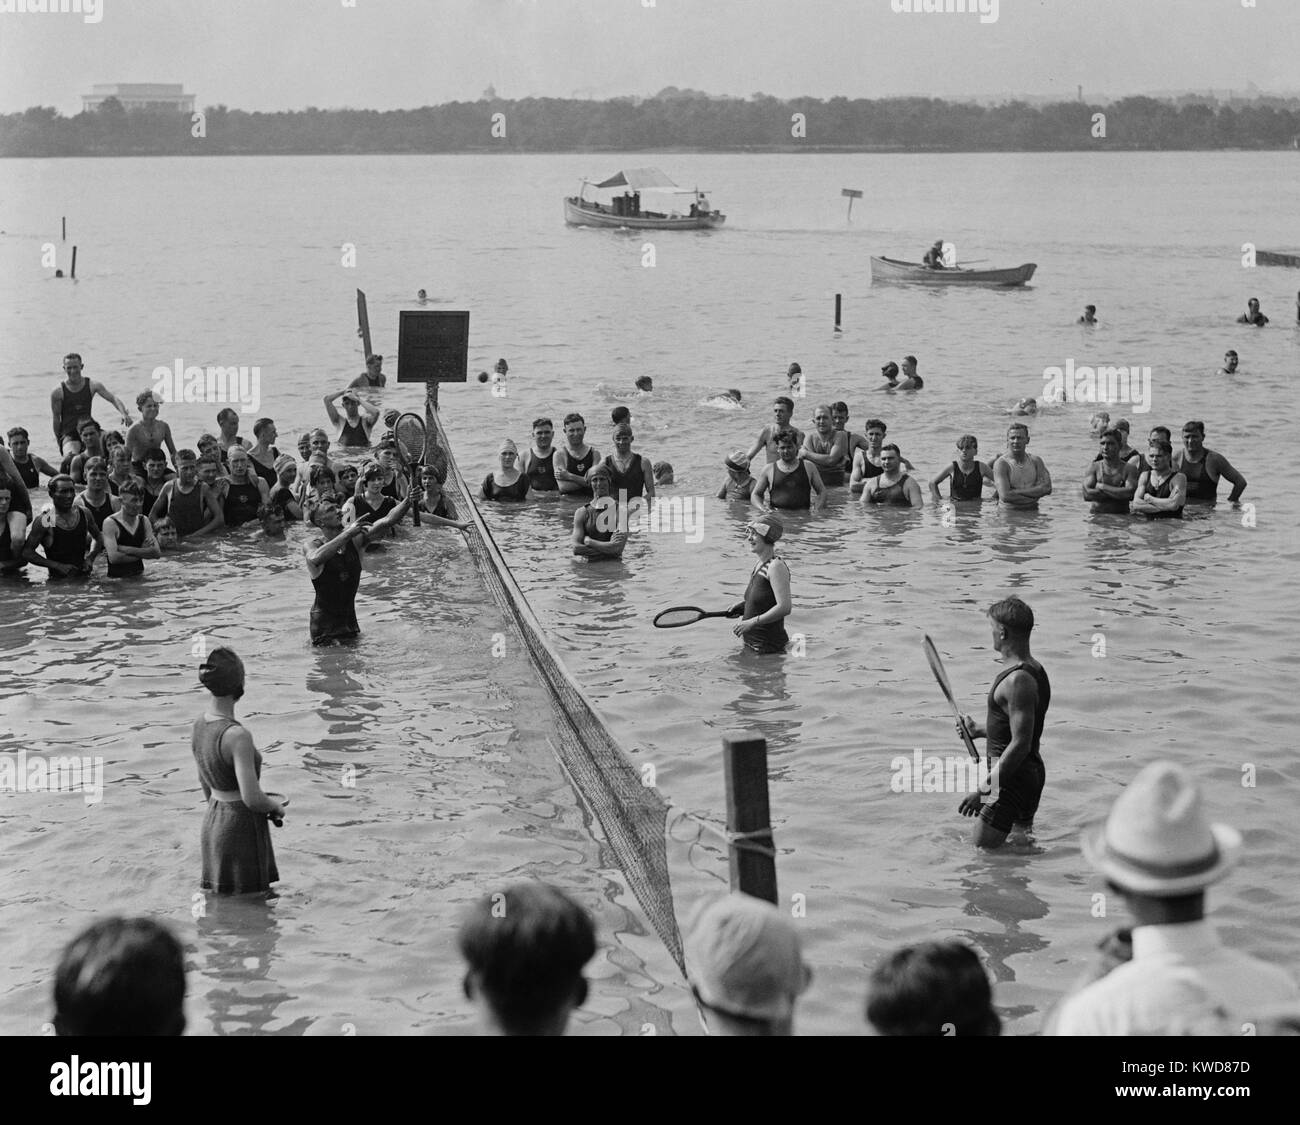 Water tennis match at the Tidal Basin in Washington, D.C., Aug. 12, 1921. (BSLOC_2015_17_143) - Stock Image